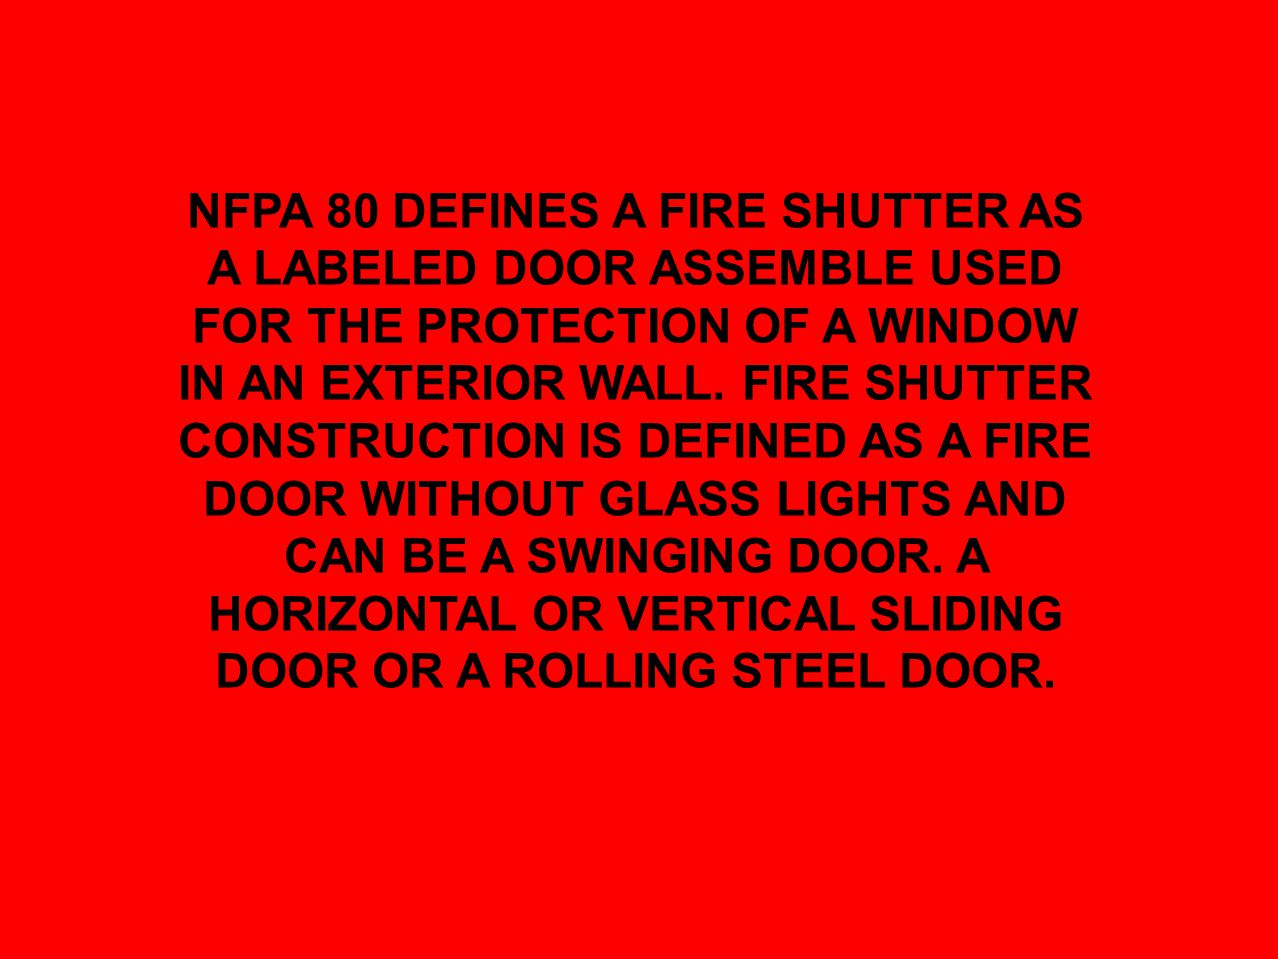 NFPA 80 DEFINES A FIRE SHUTTER AS A LABELED DOOR ASSEMBLE USED FOR THE PROTECTION OF A WINDOW IN AN EXTERIOR WALL. FIRE SHUTTER CONSTRUCTION IS DEFINE